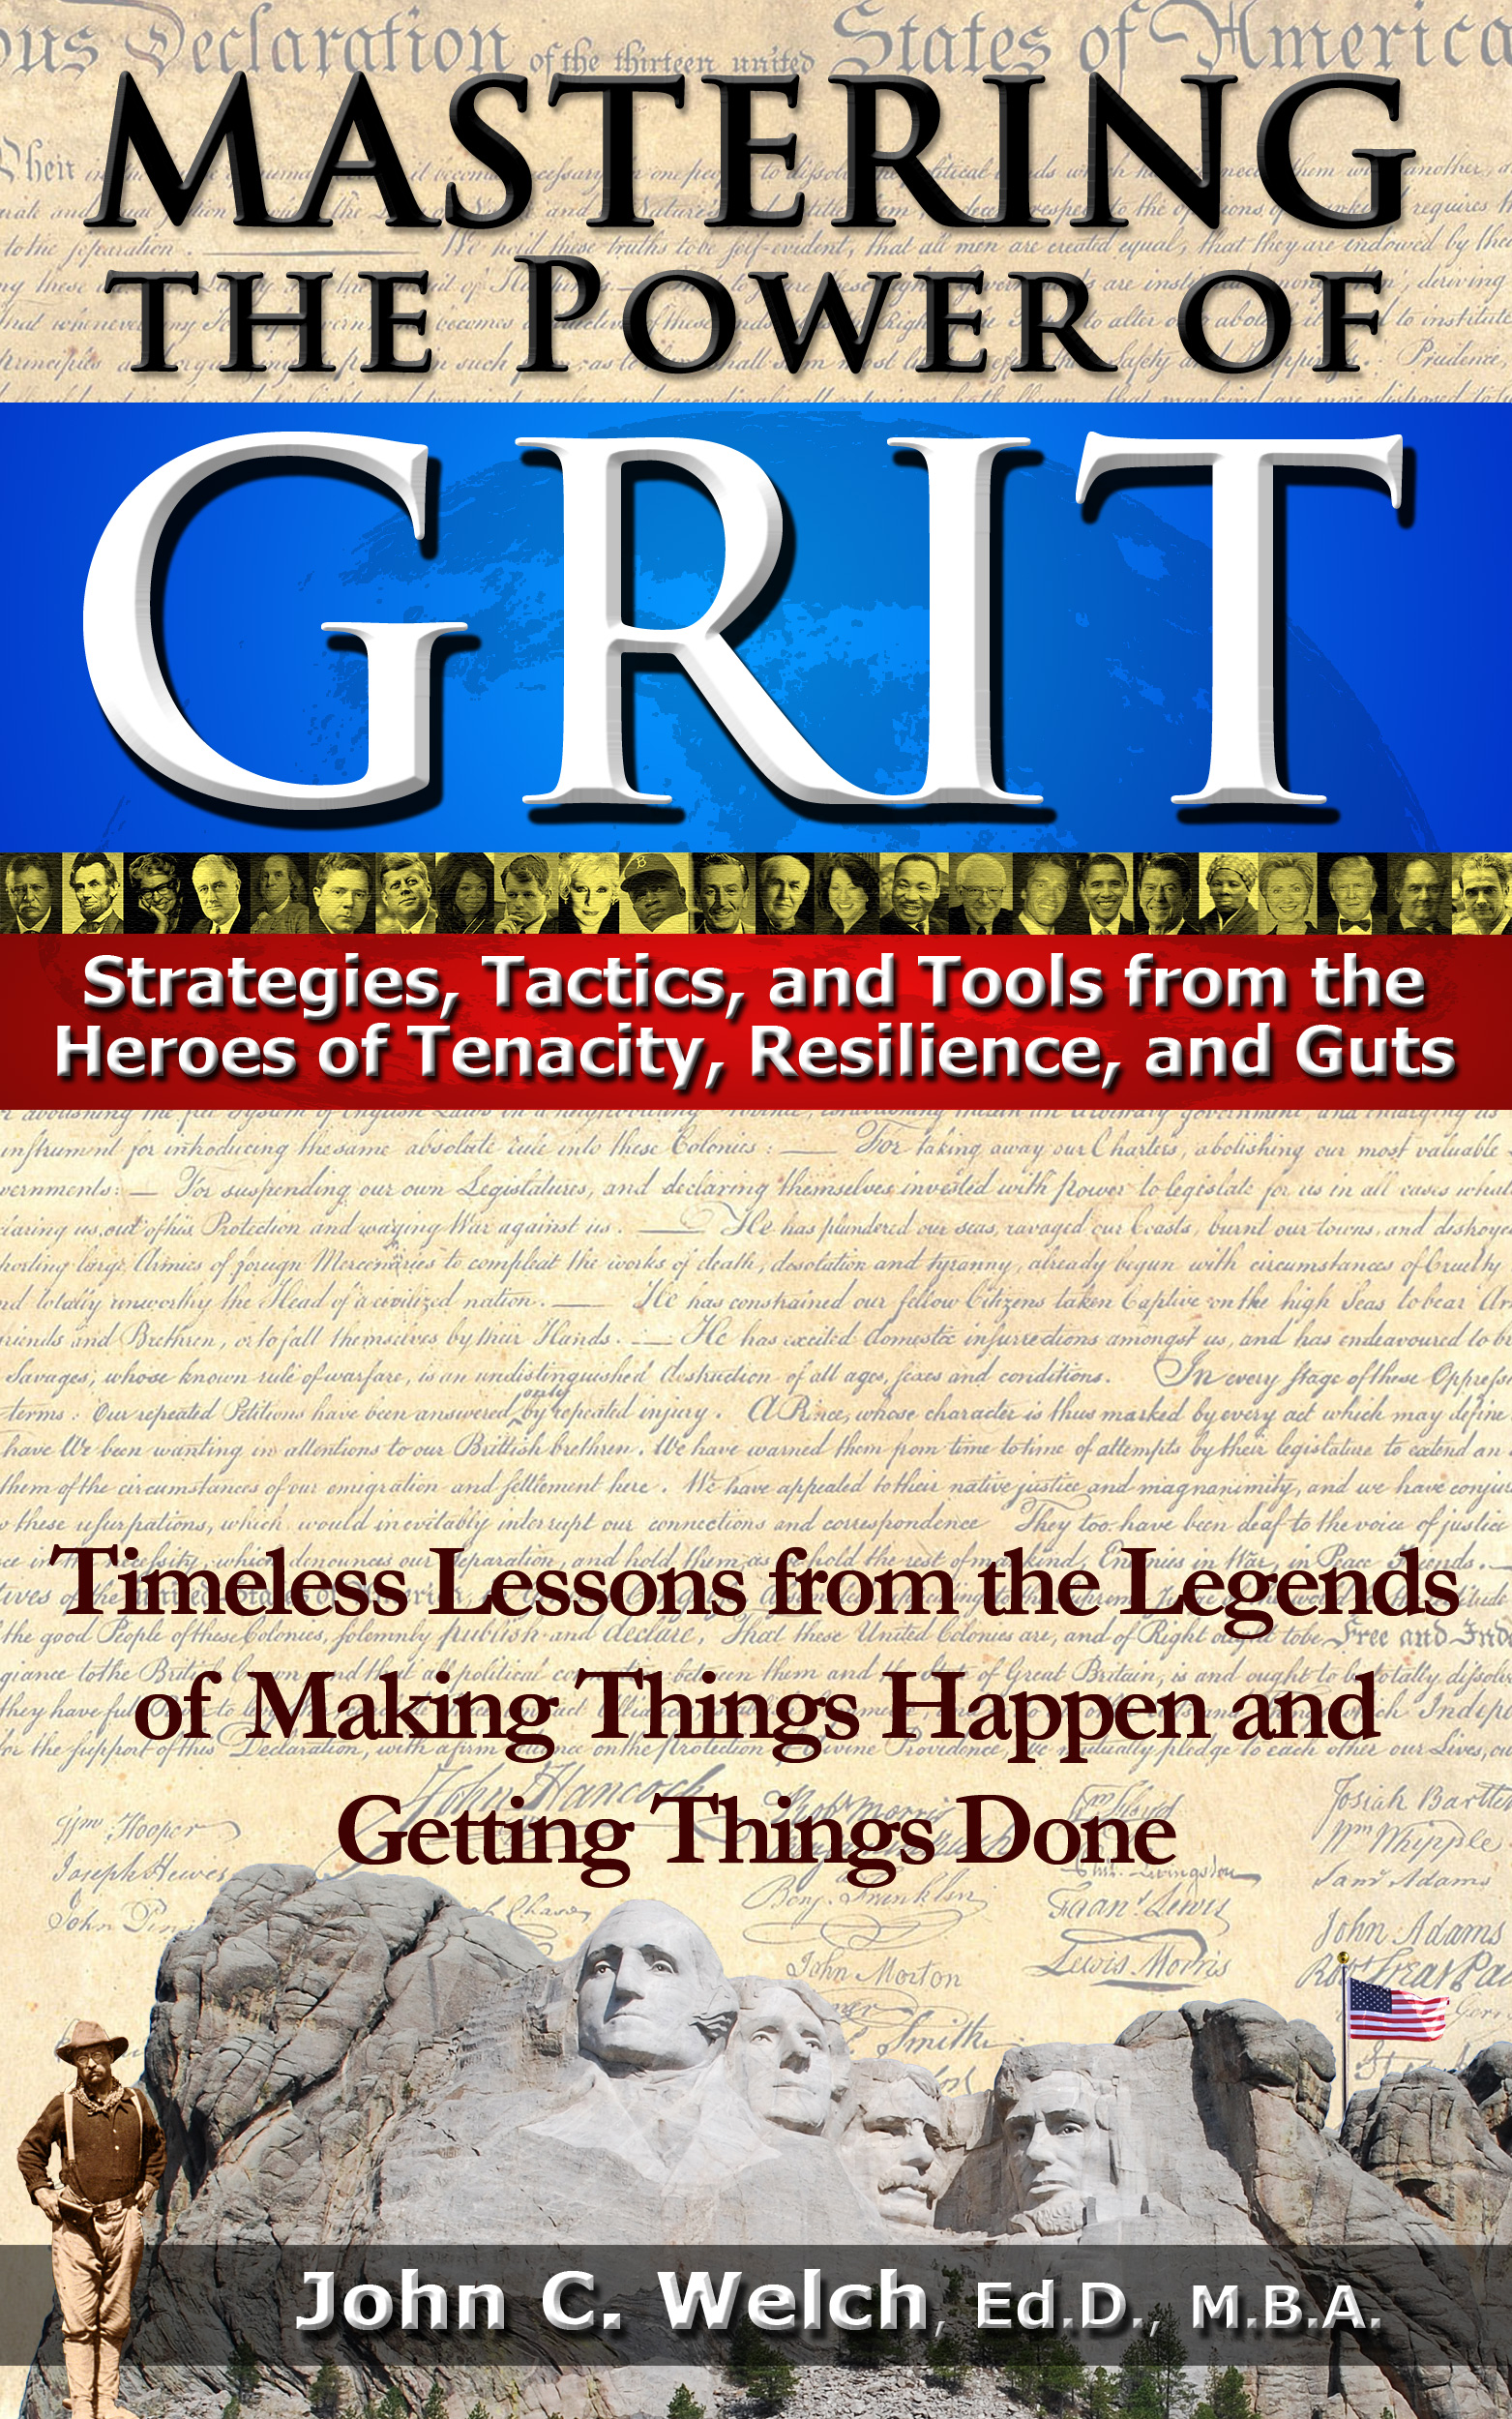 Mastering the Power of Grit: Strategies, Tactics, and Tools from the Heroes of Tenacity, Resilience, and Guts. Grit is the great game changer on the road to personal transformation, high-achievement, excellence and success. Virtually all of the great hustlers and heroes of history have been marked by grit.